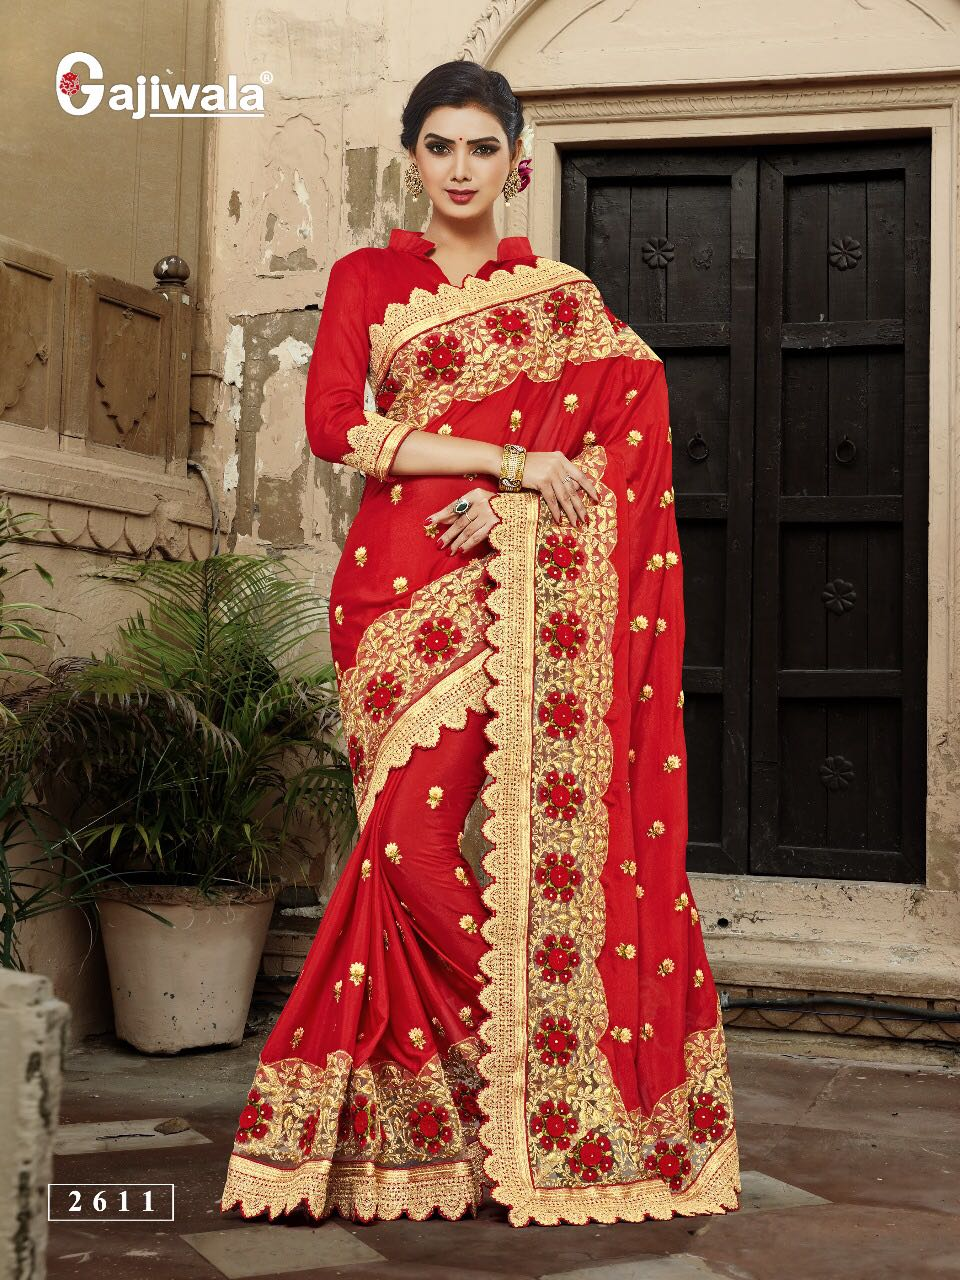 NITYANX » Gajiwala SAREES THE QUEEN 2611 To 2617 SERIES ...